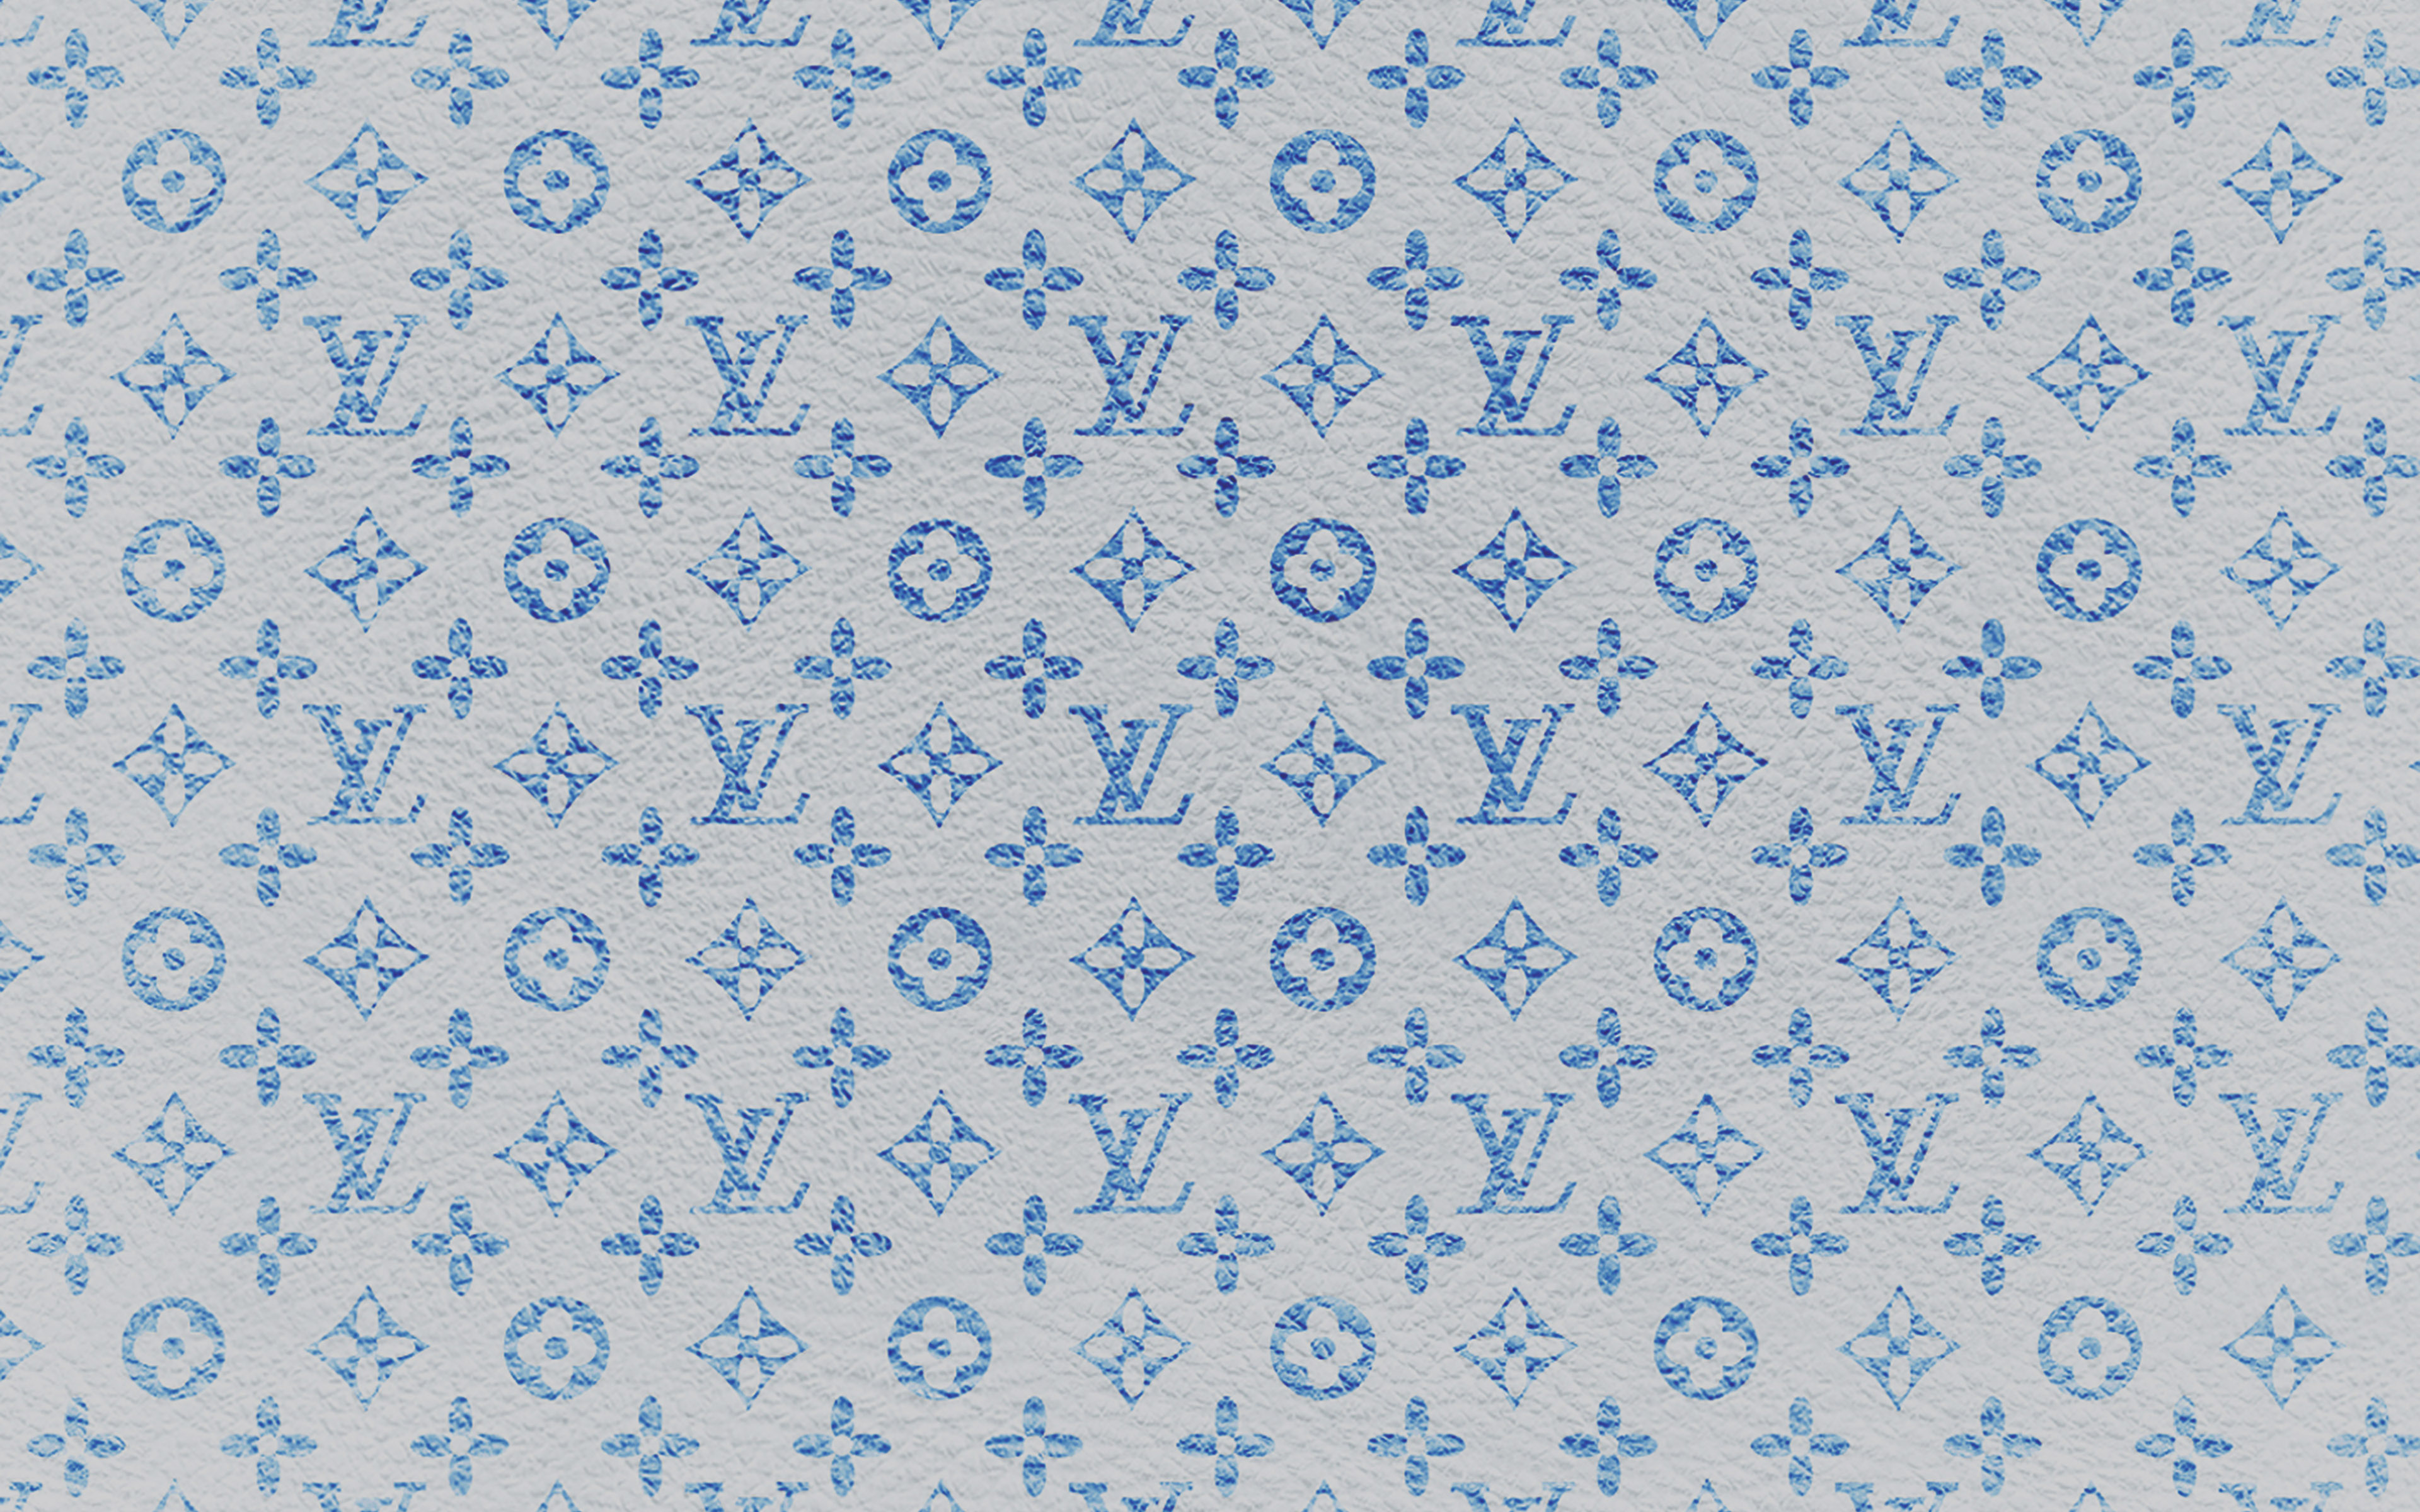 Vf21 Louis Vuitton Blue Pattern Art Papers Co